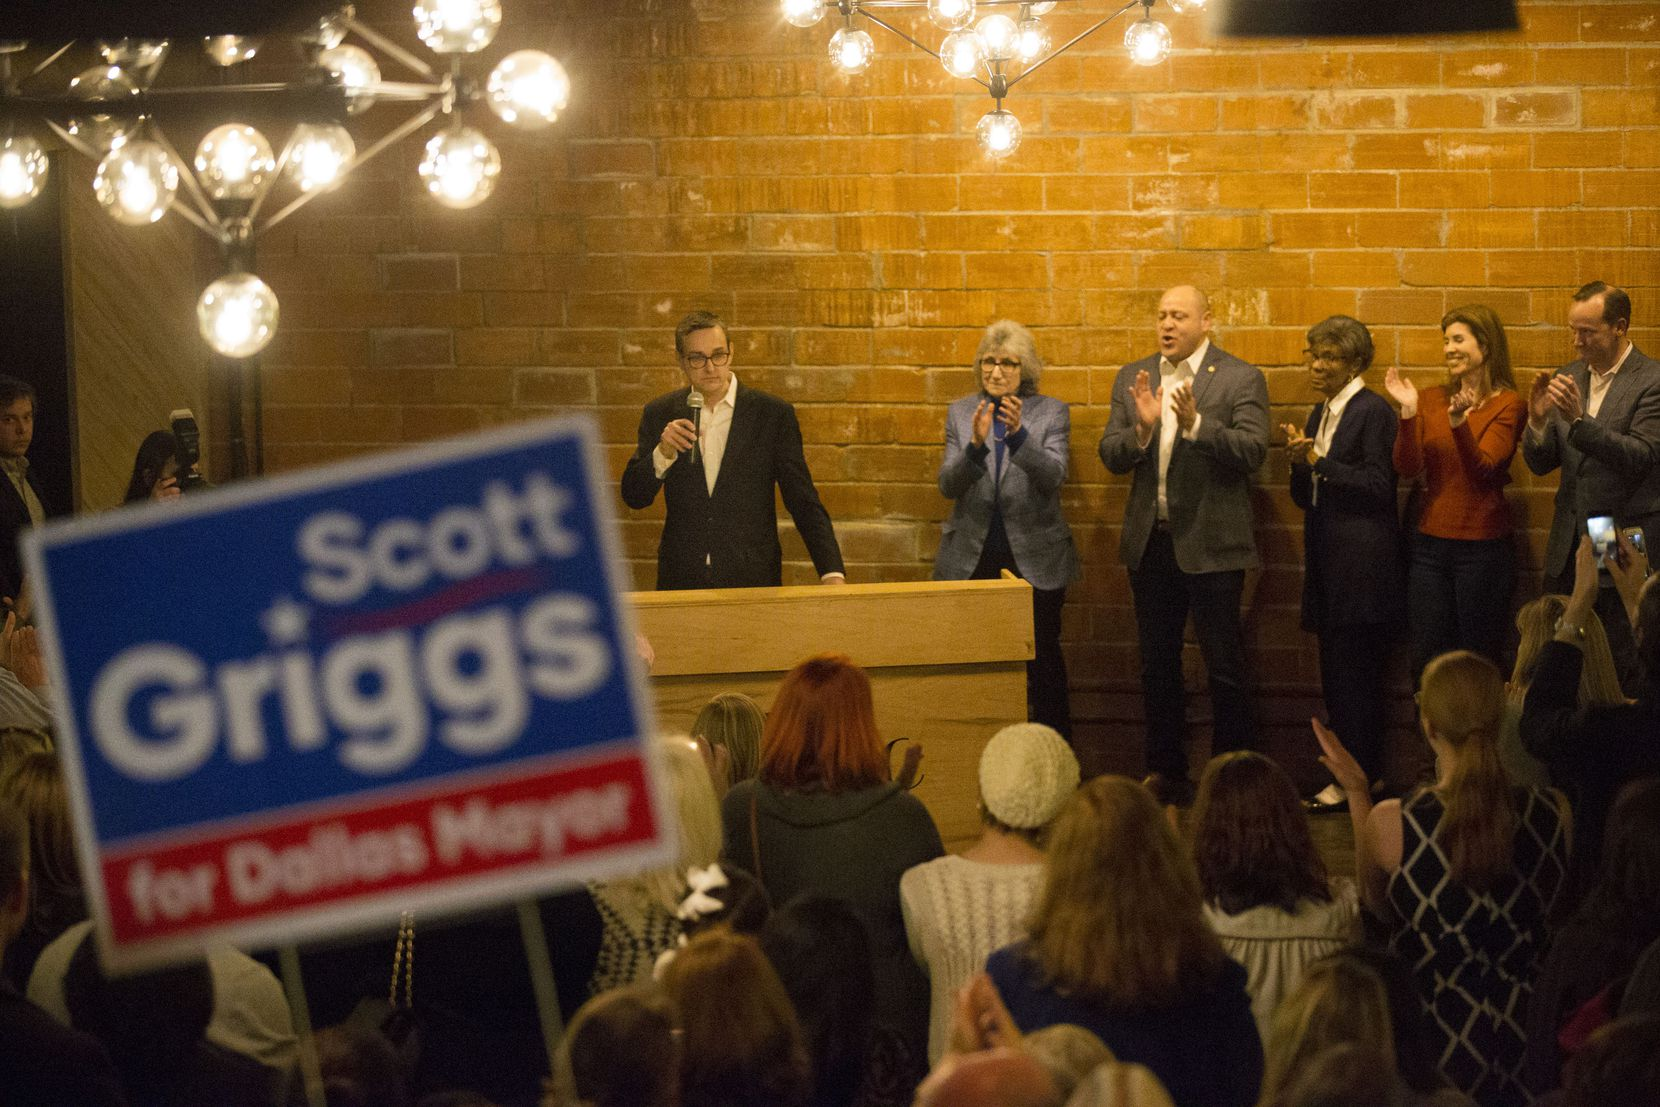 Dallas City Council member Scott Griggs announced just three weeks ago that he will run for mayor, and already several of his supporters are creating distractions in the race.